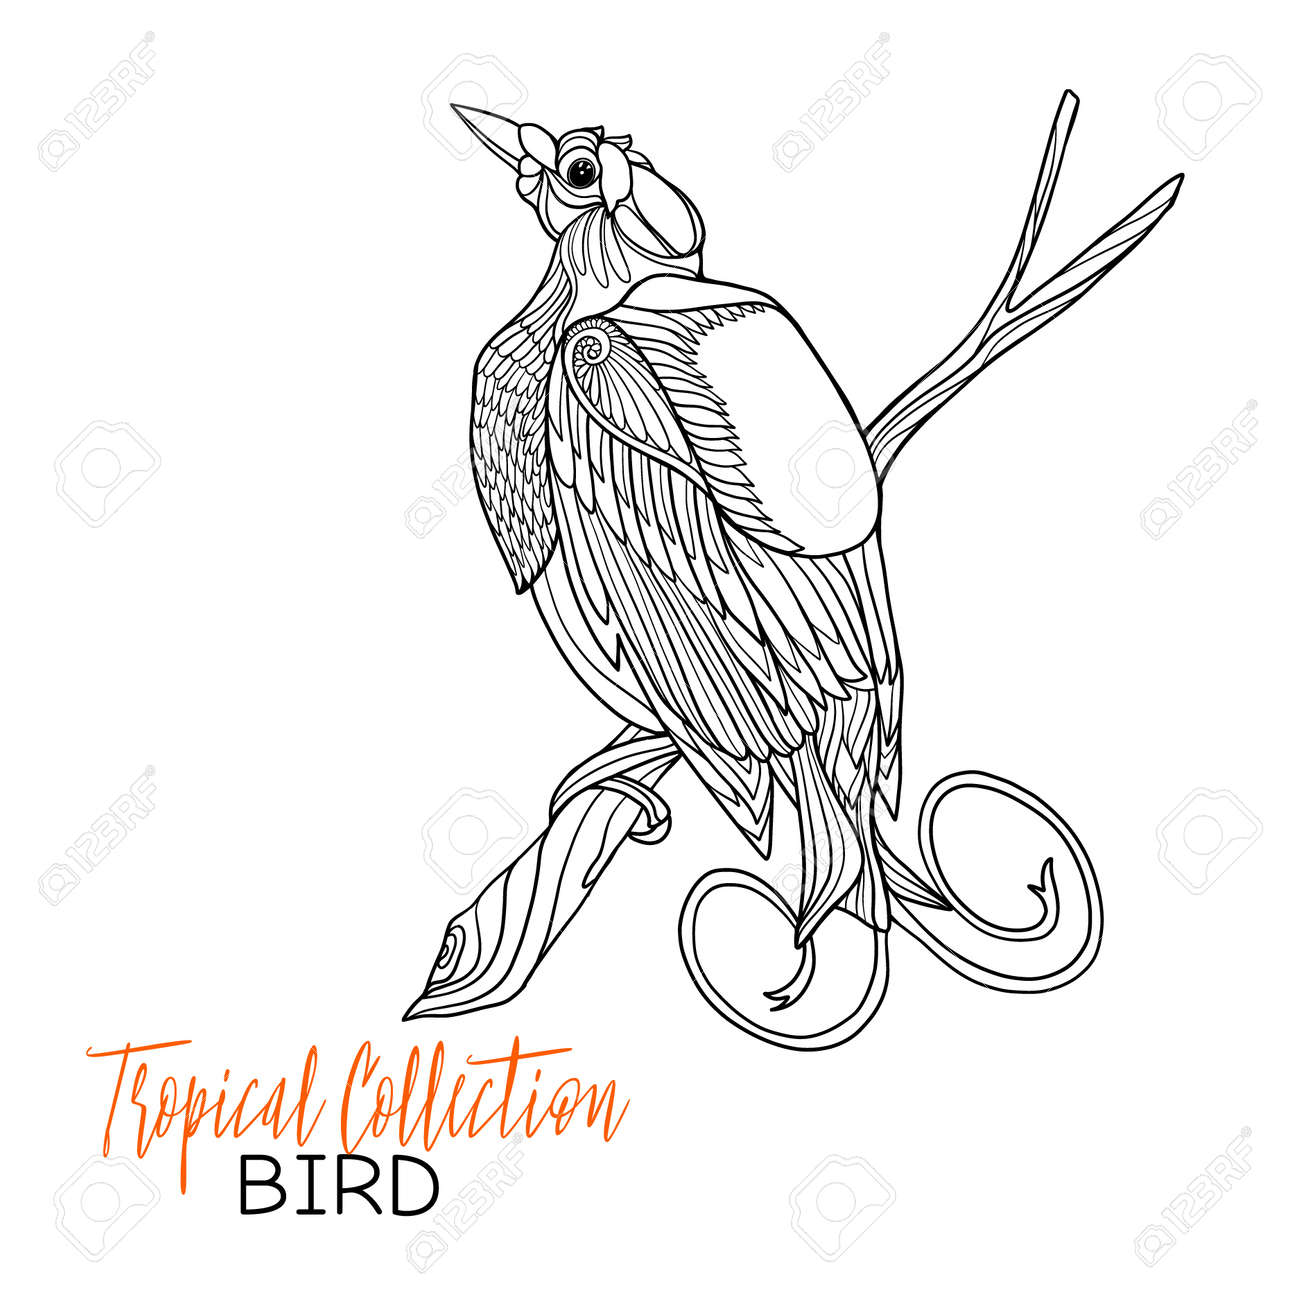 Tropical Bird Vector Illustration Coloring Book For Adult And Older Children Page